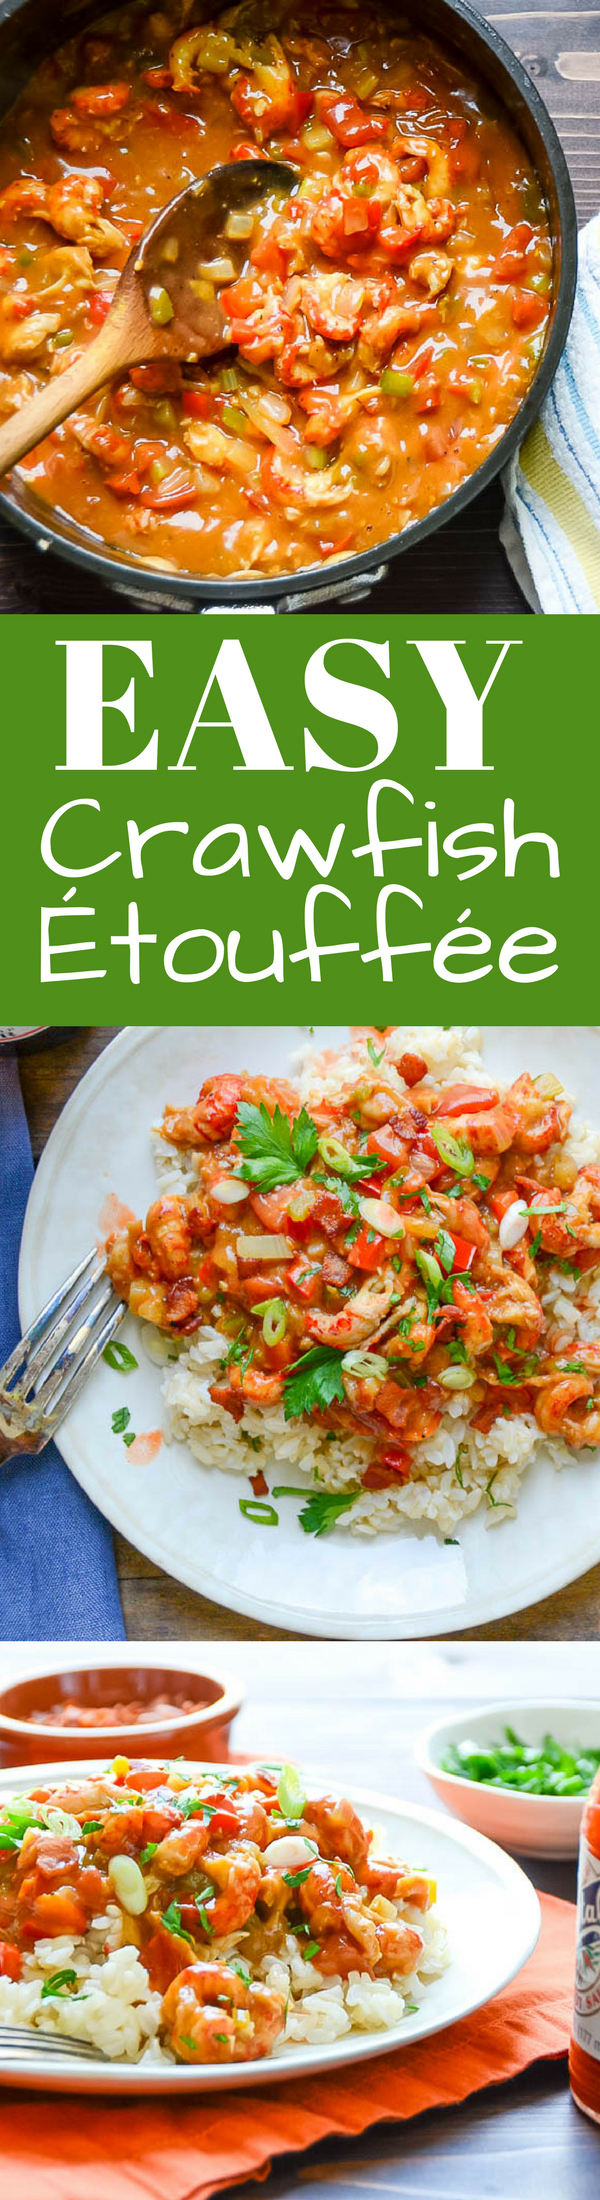 This recipe for Easy Crawfish Étouffée is a simple to make  one pan meal. Enjoy a taste of the bayou any night of the week!